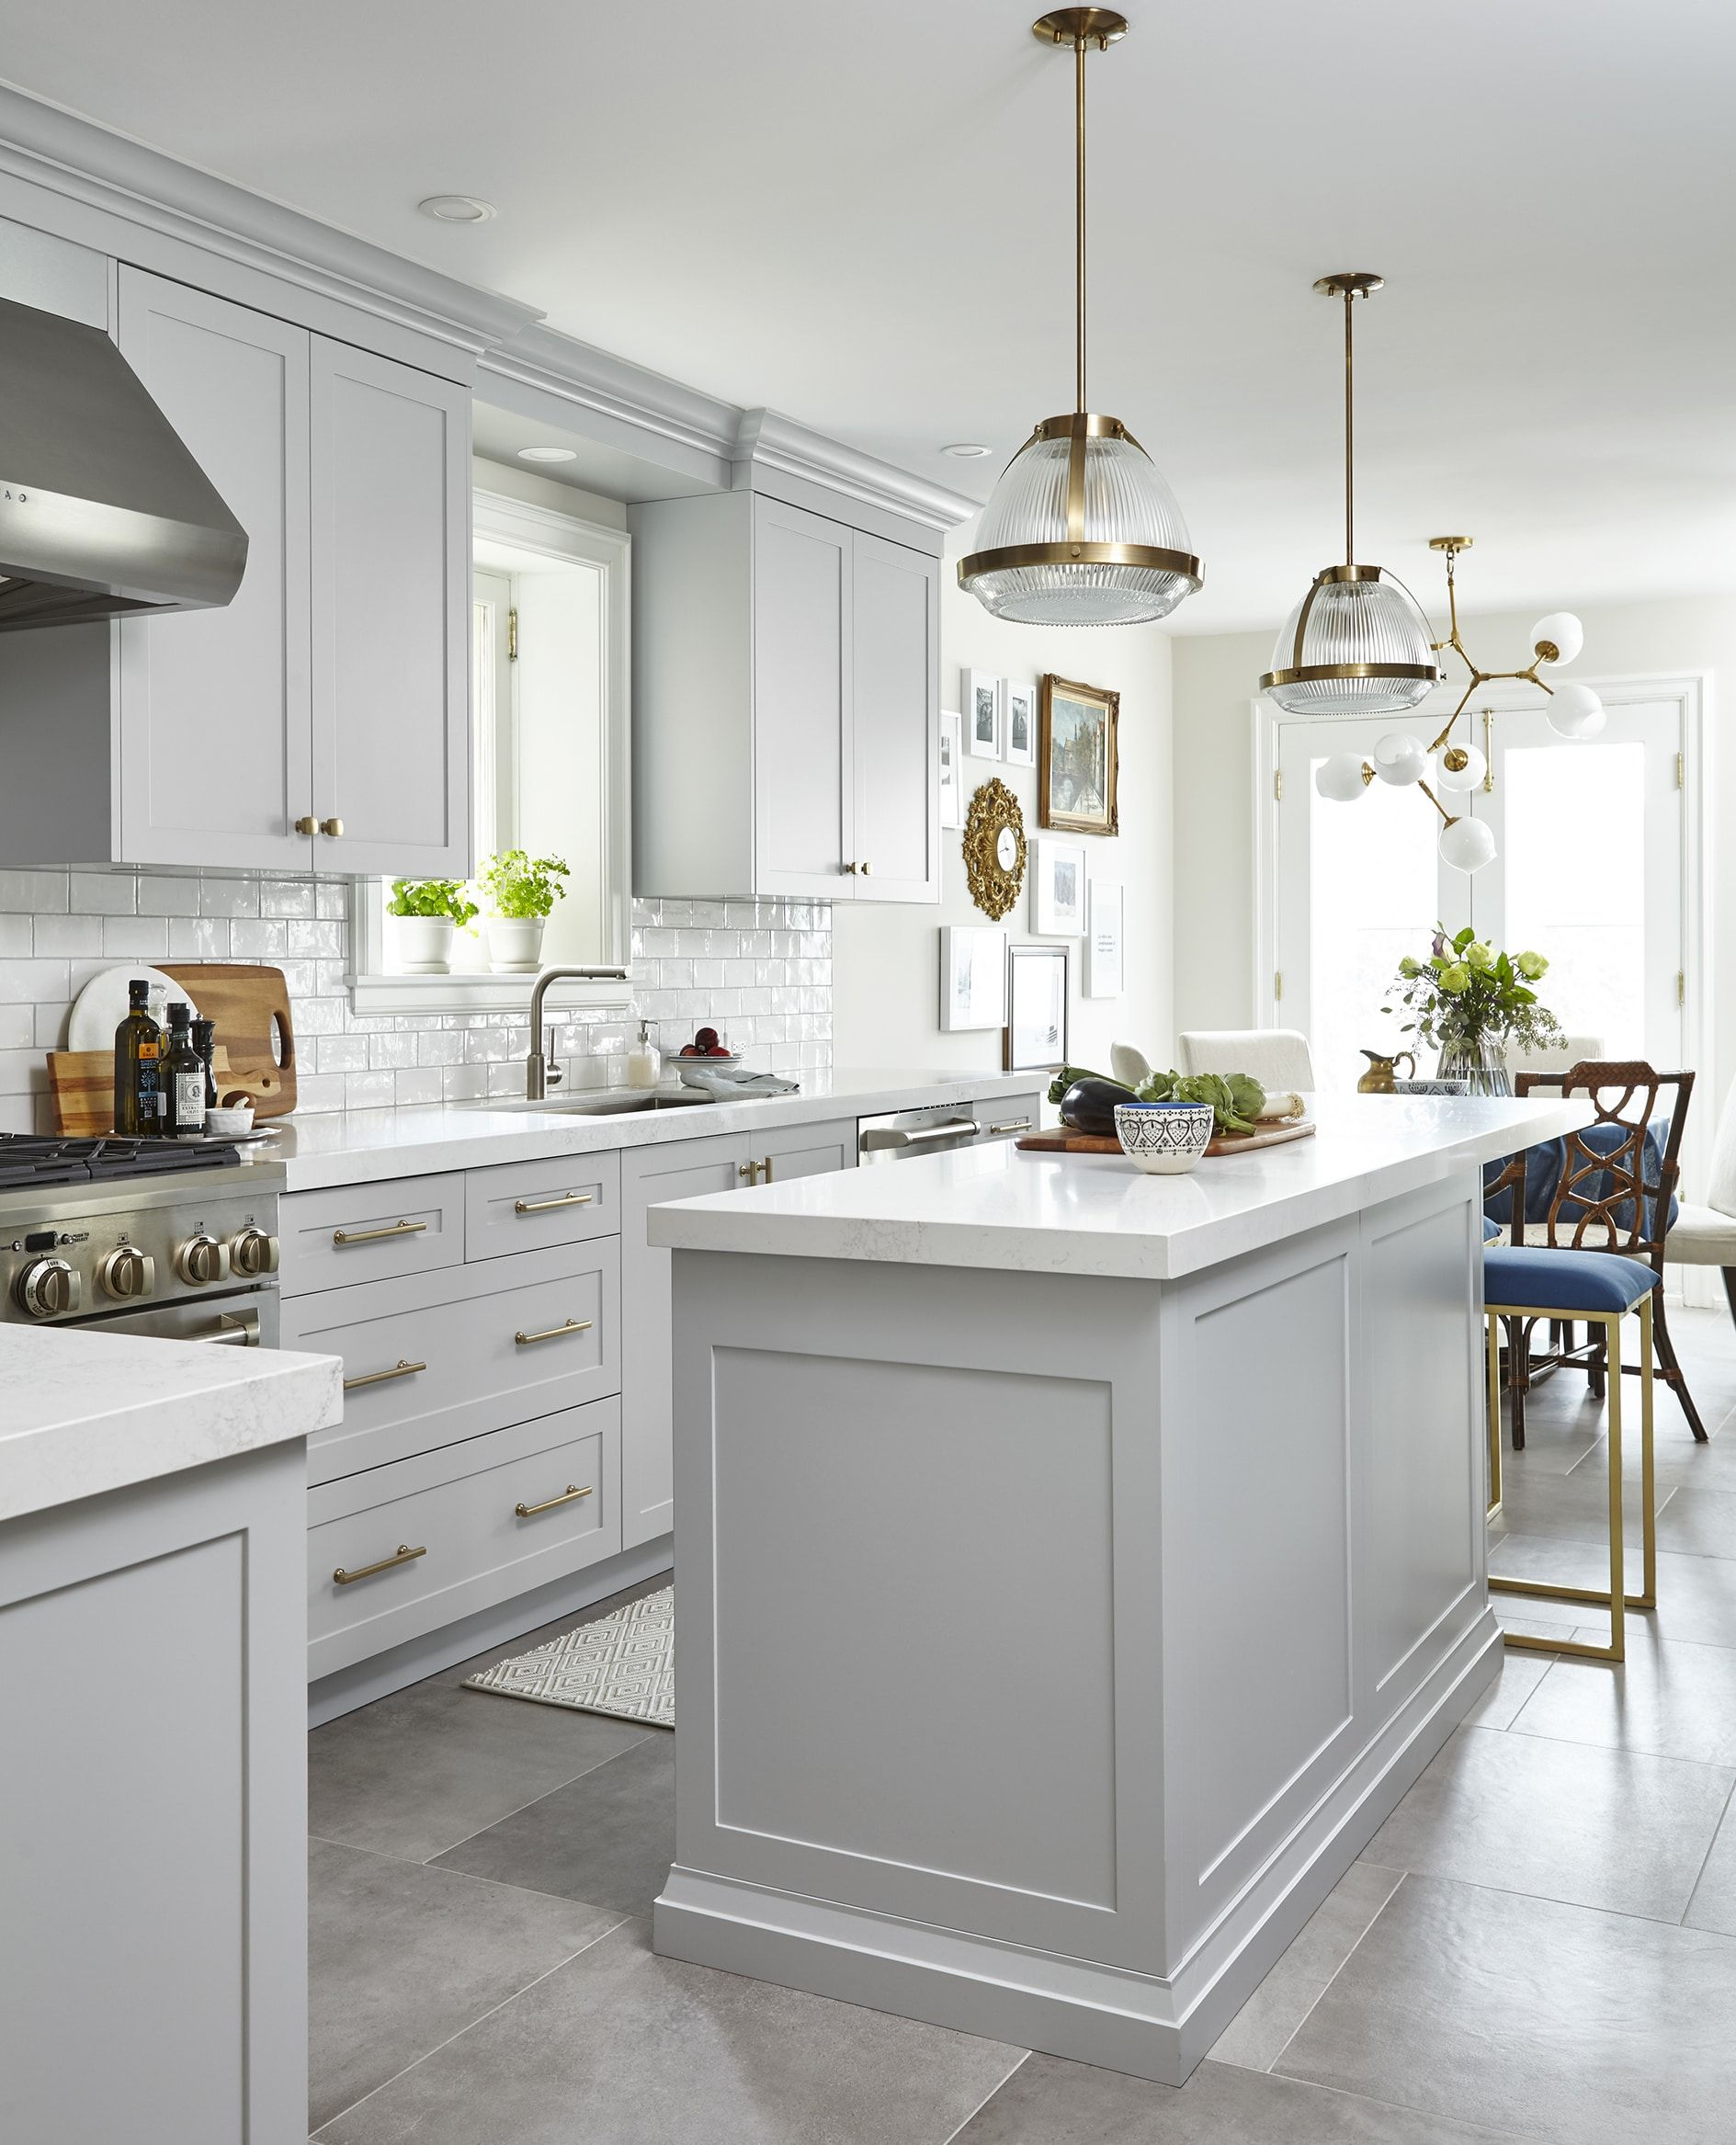 Light Grey Kitchen With Celestial Chandelier Over The Kitchen Table White Quartz Countertops O White Kitchen Design Kitchen Cabinet Design Kitchen Concepts